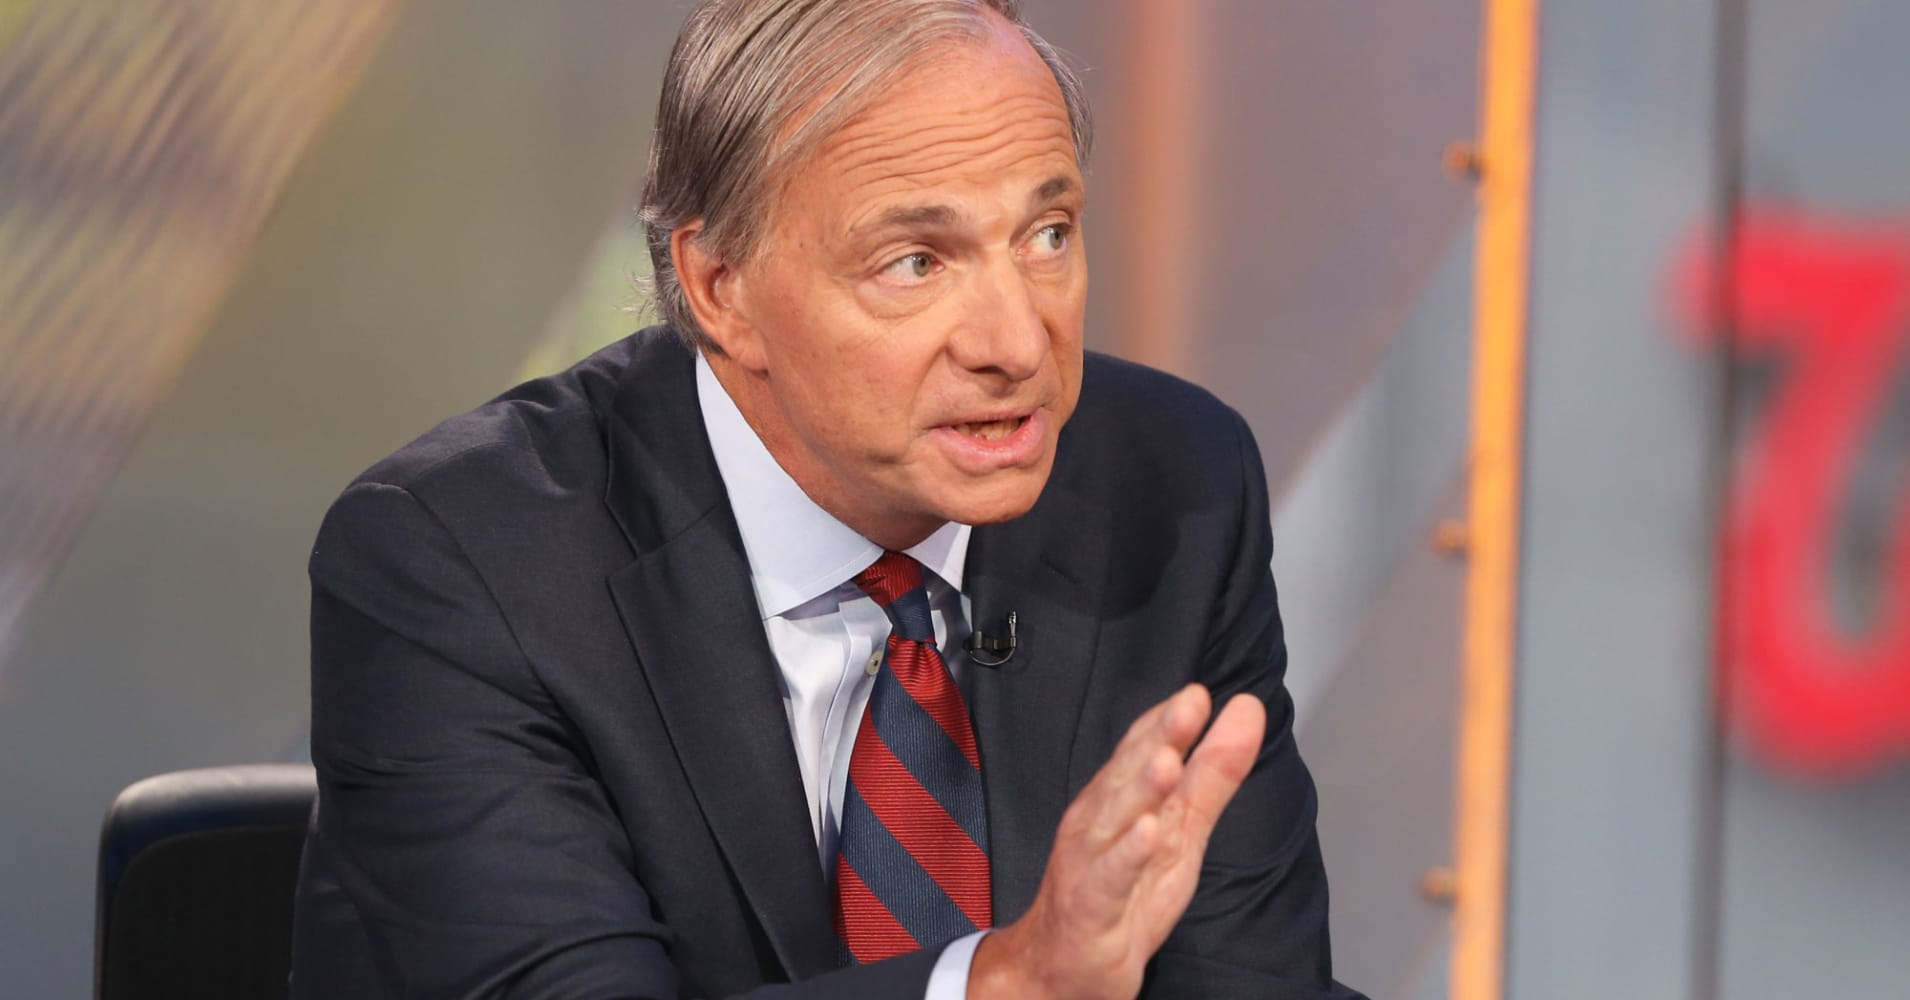 Tax reform-related bonuses won't change the wealth gap: Ray Dalio